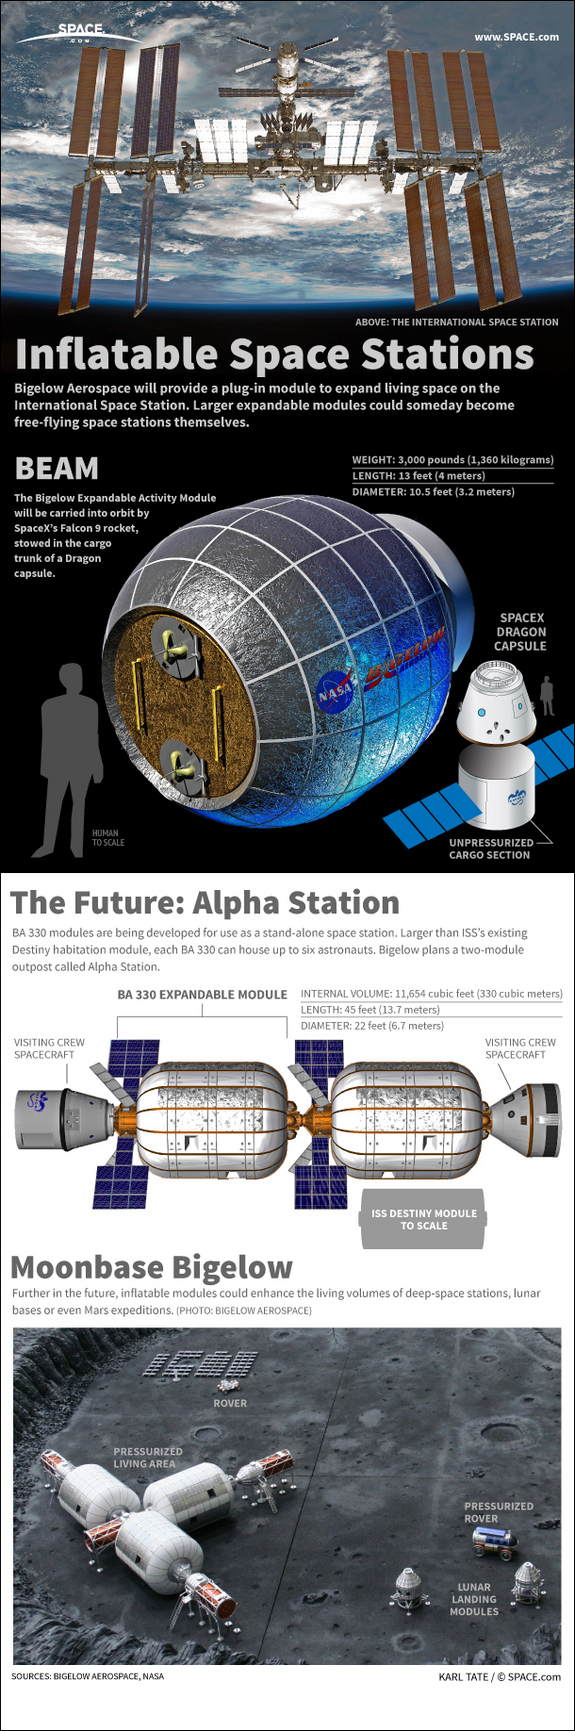 Find out how Bigelow Aerospace's BEAM expandable module will enhance the living area of the International Space Station, in this SPACE.com infographic.